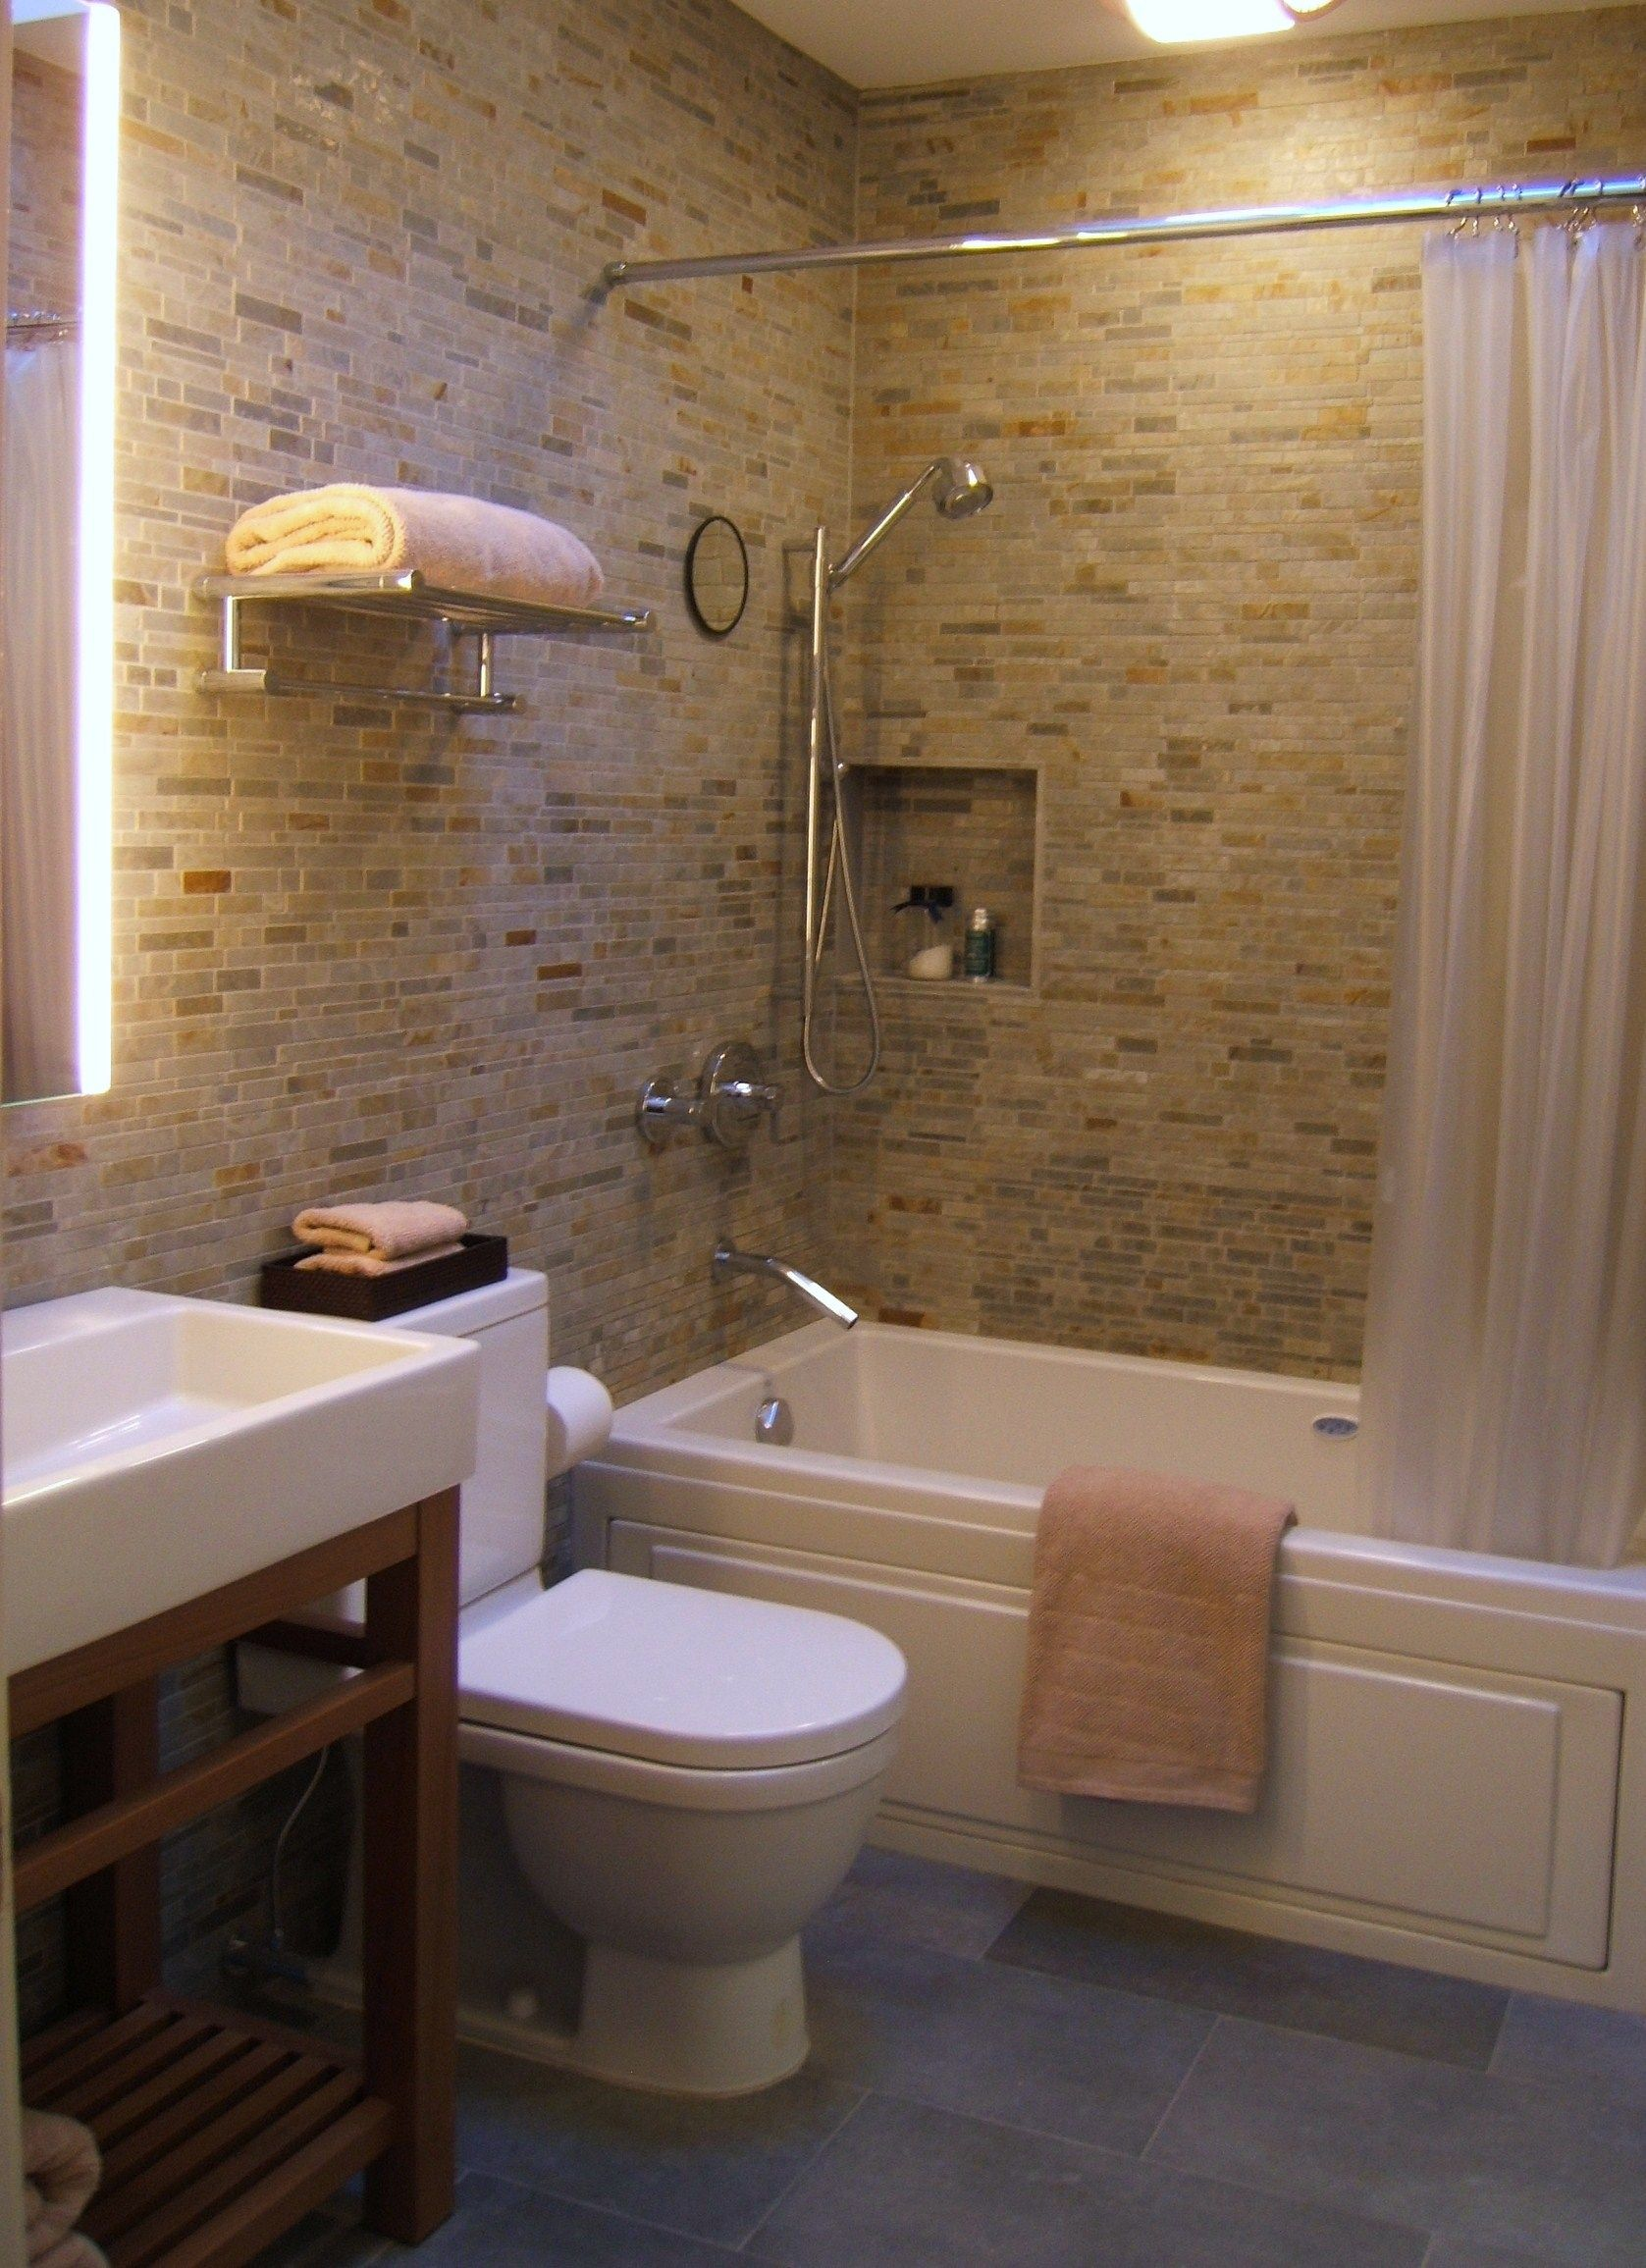 Small bathroom designs south africa small bath for Ideas for bathroom renovation pictures